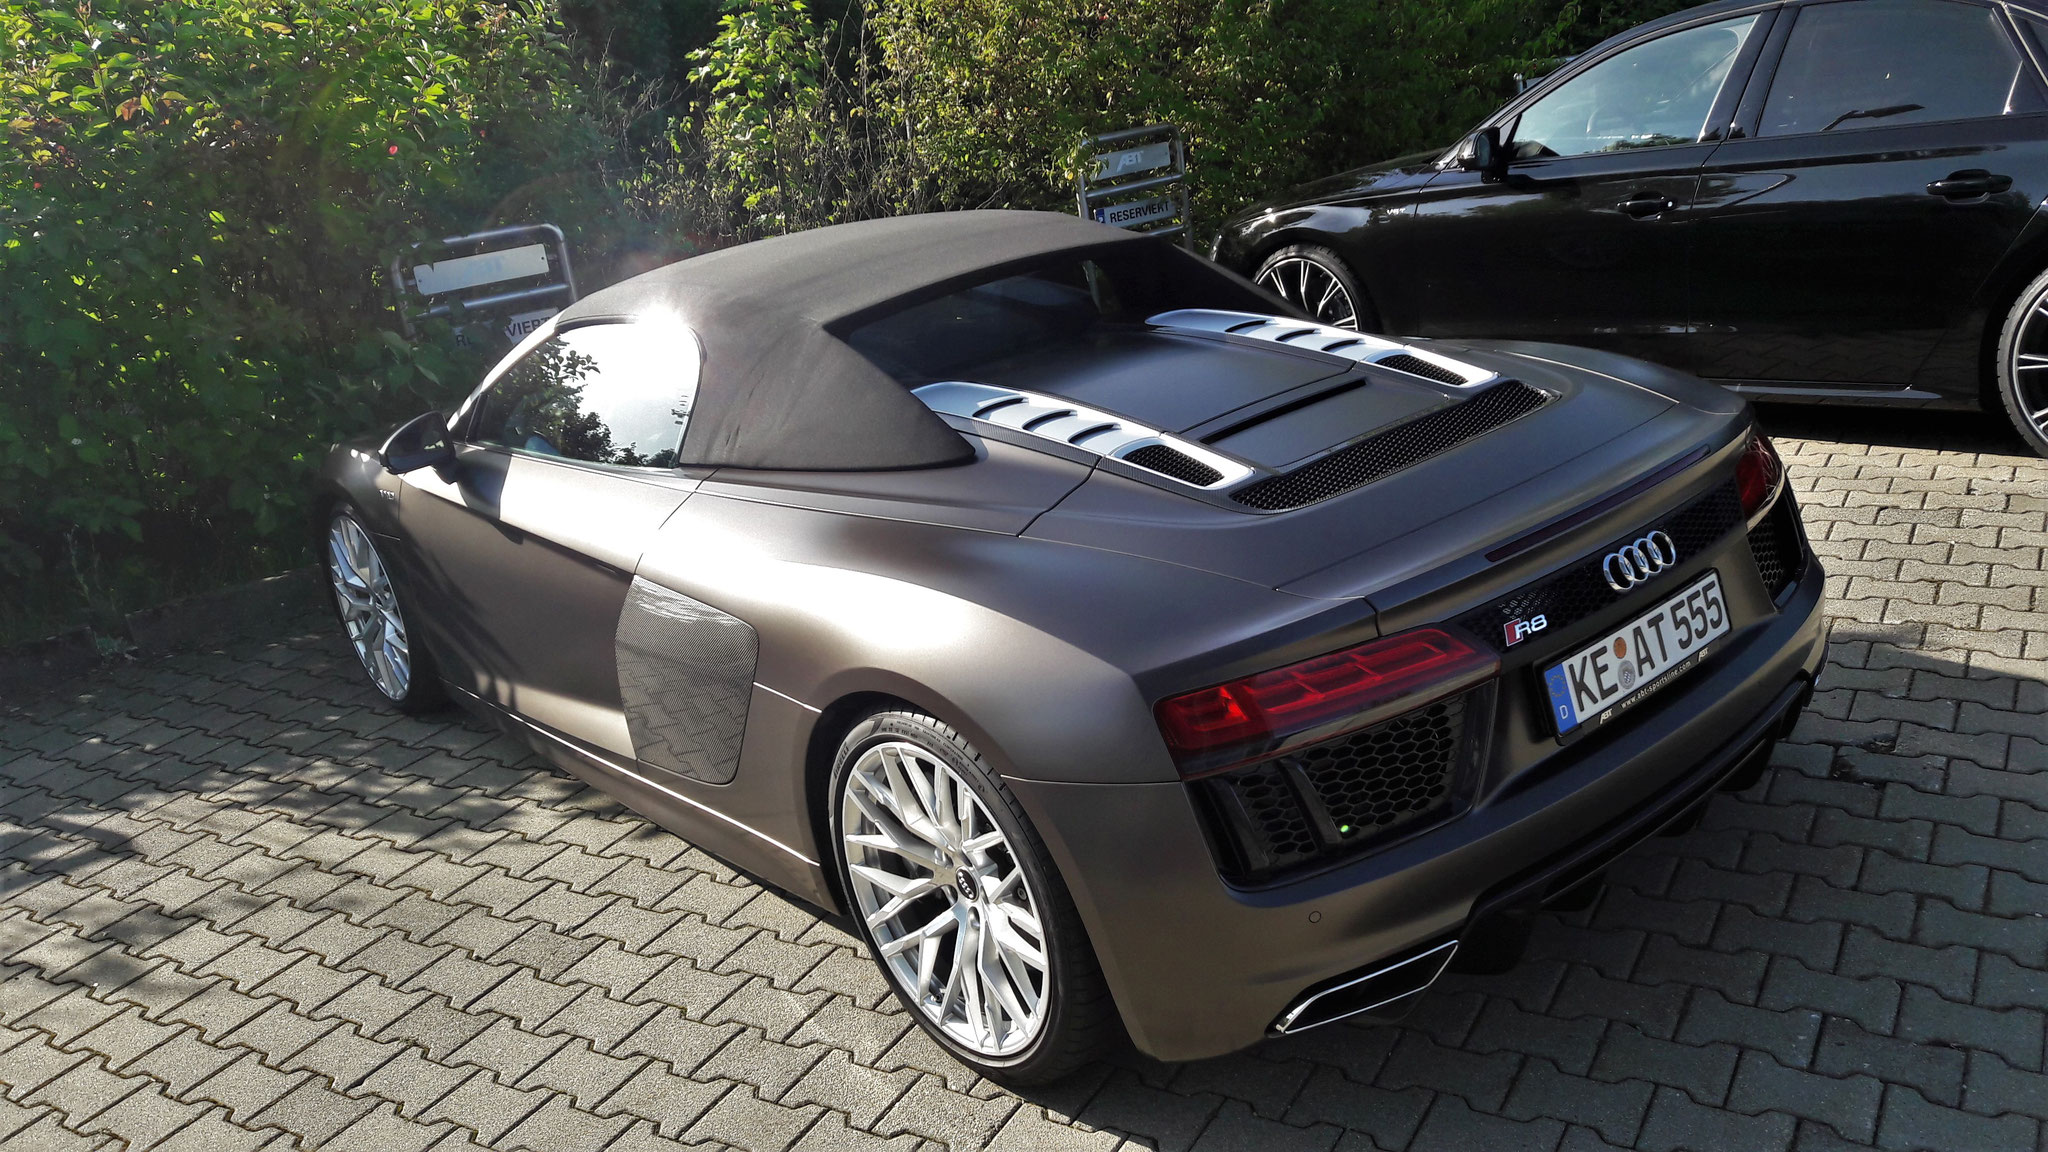 Audi R8 V10 Spyder - KE-AT-555